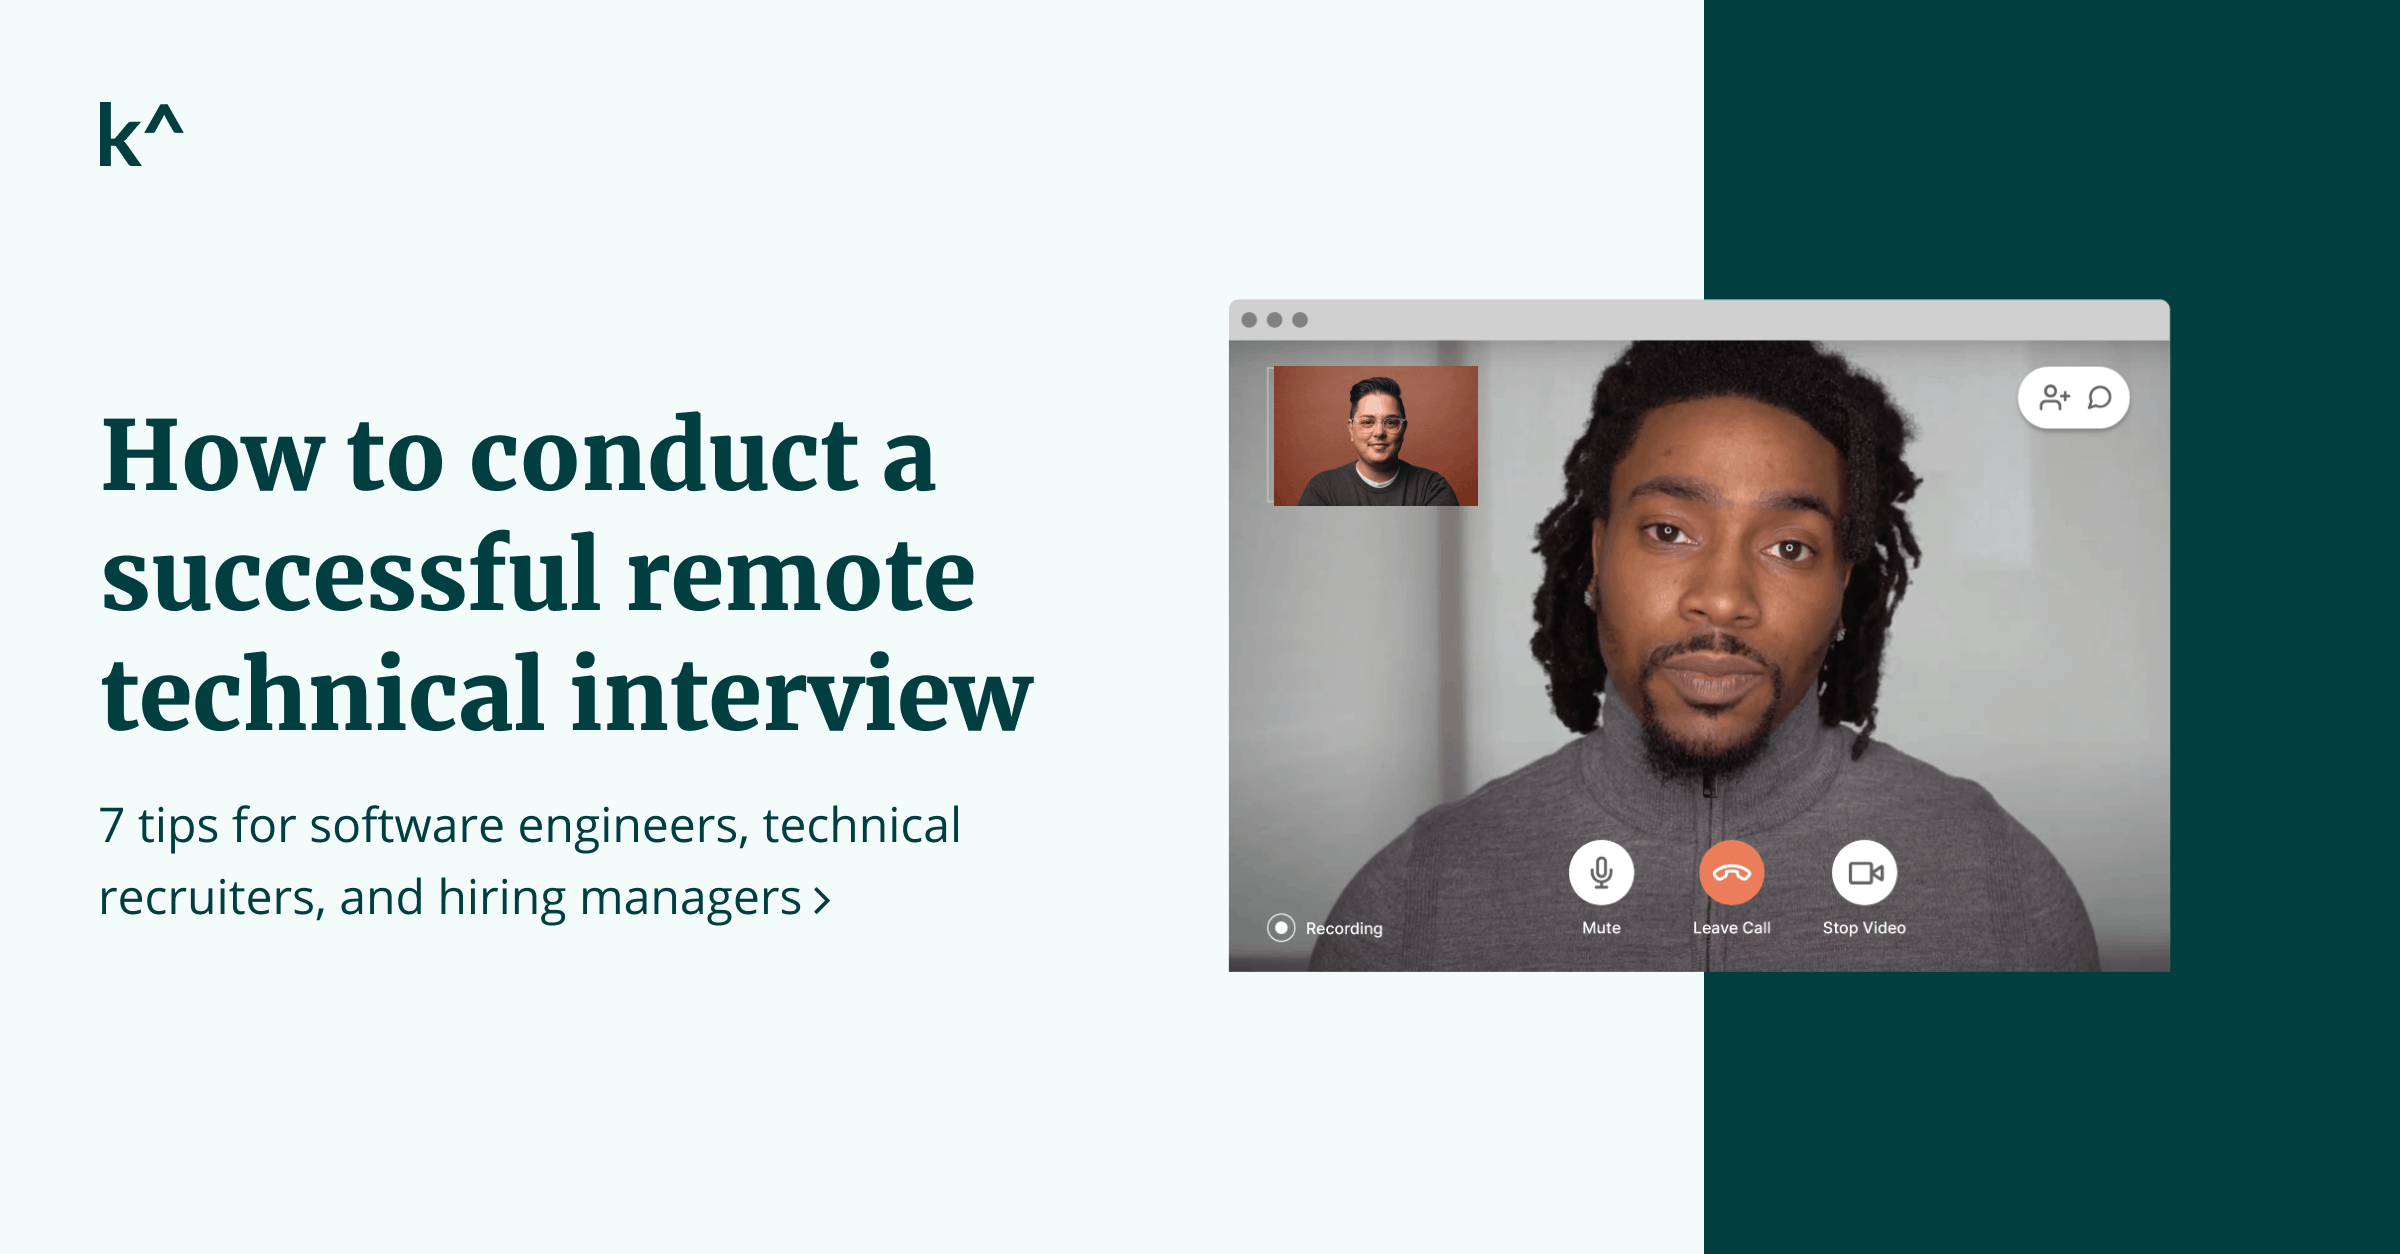 How to conduct a successful remote technical interview